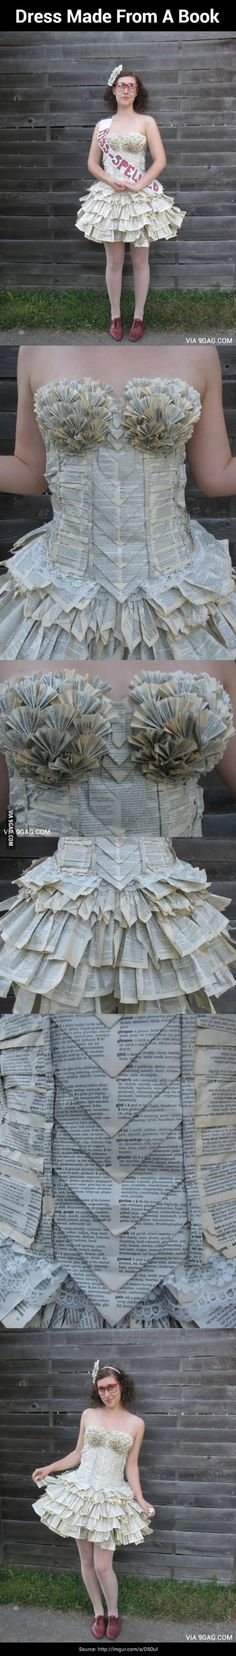 She made a dress out of a book!